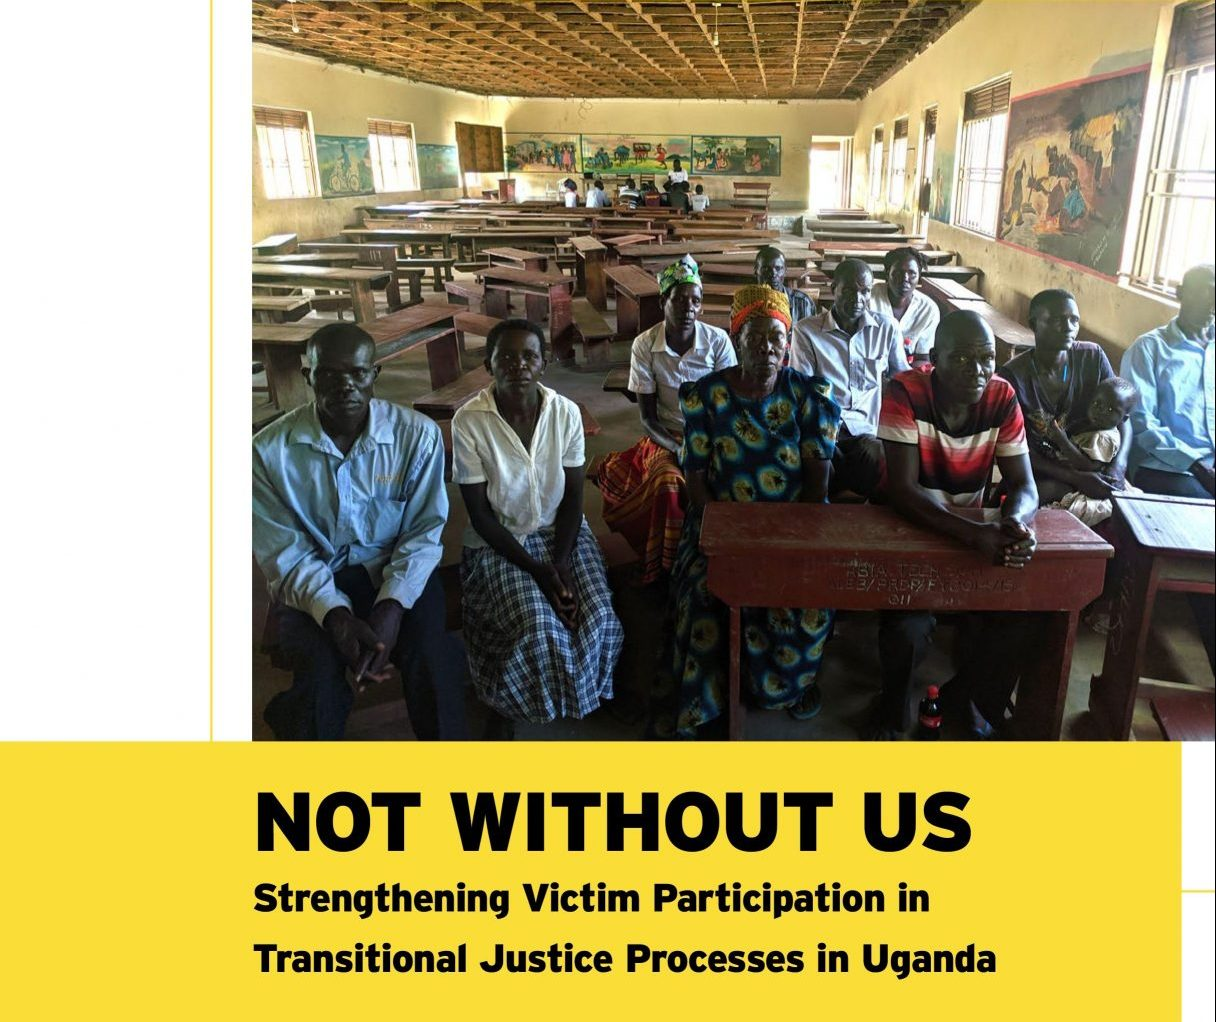 Victims of the 20-Year Conflict in Uganda Mostly Sidelined from the Transitional Justice Process: New report finds